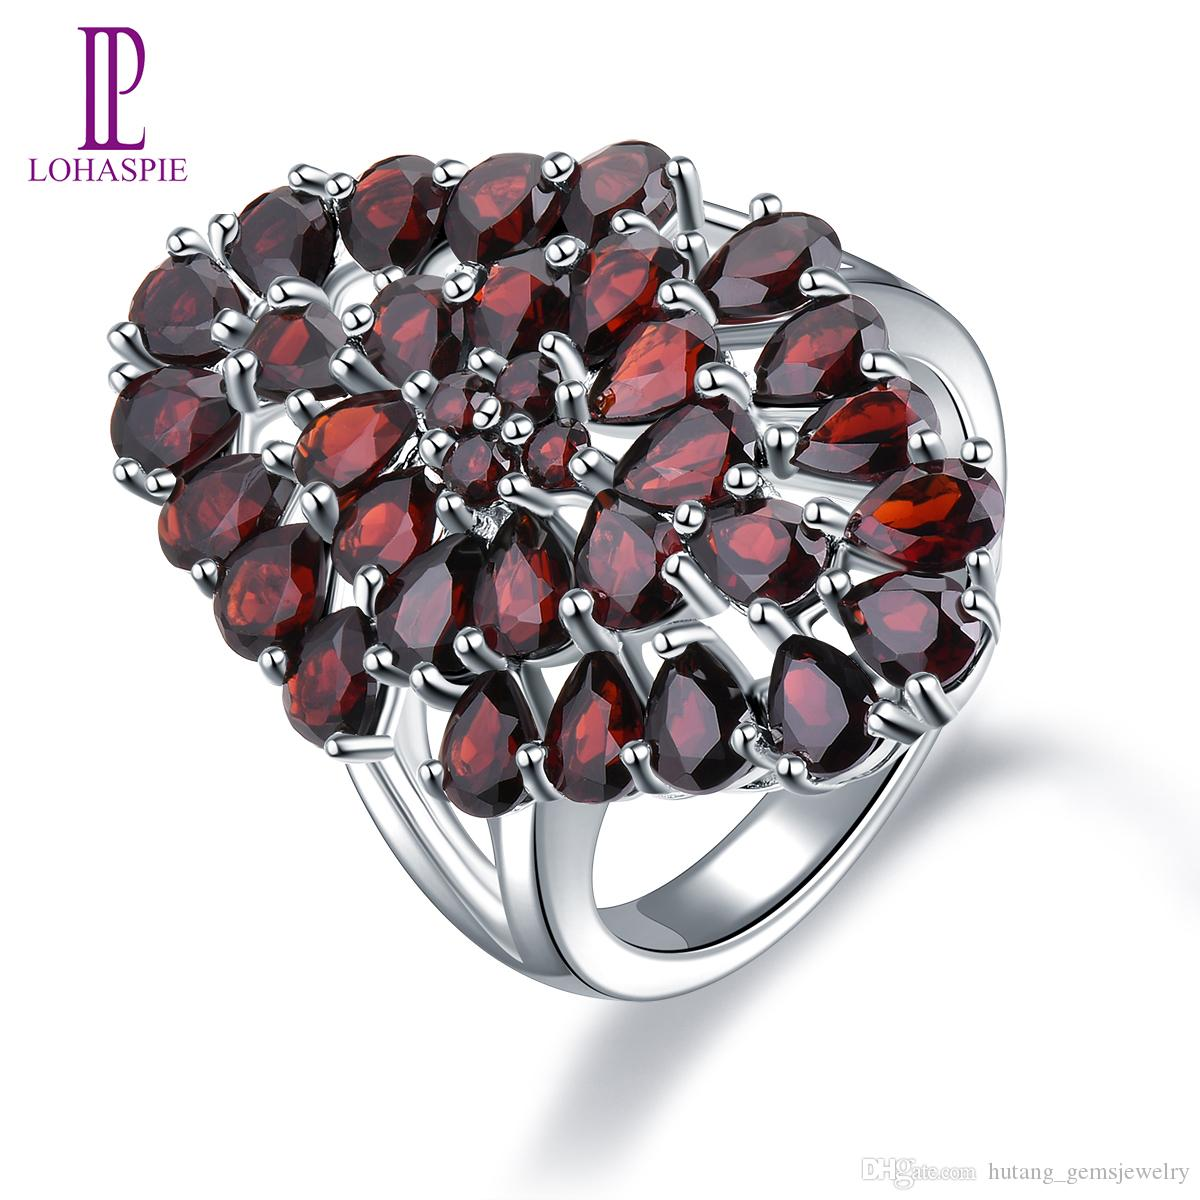 Garnet Necklace Ladies 925 Sterling Silver Hallmarked Boxed Gift For Her UK FAST